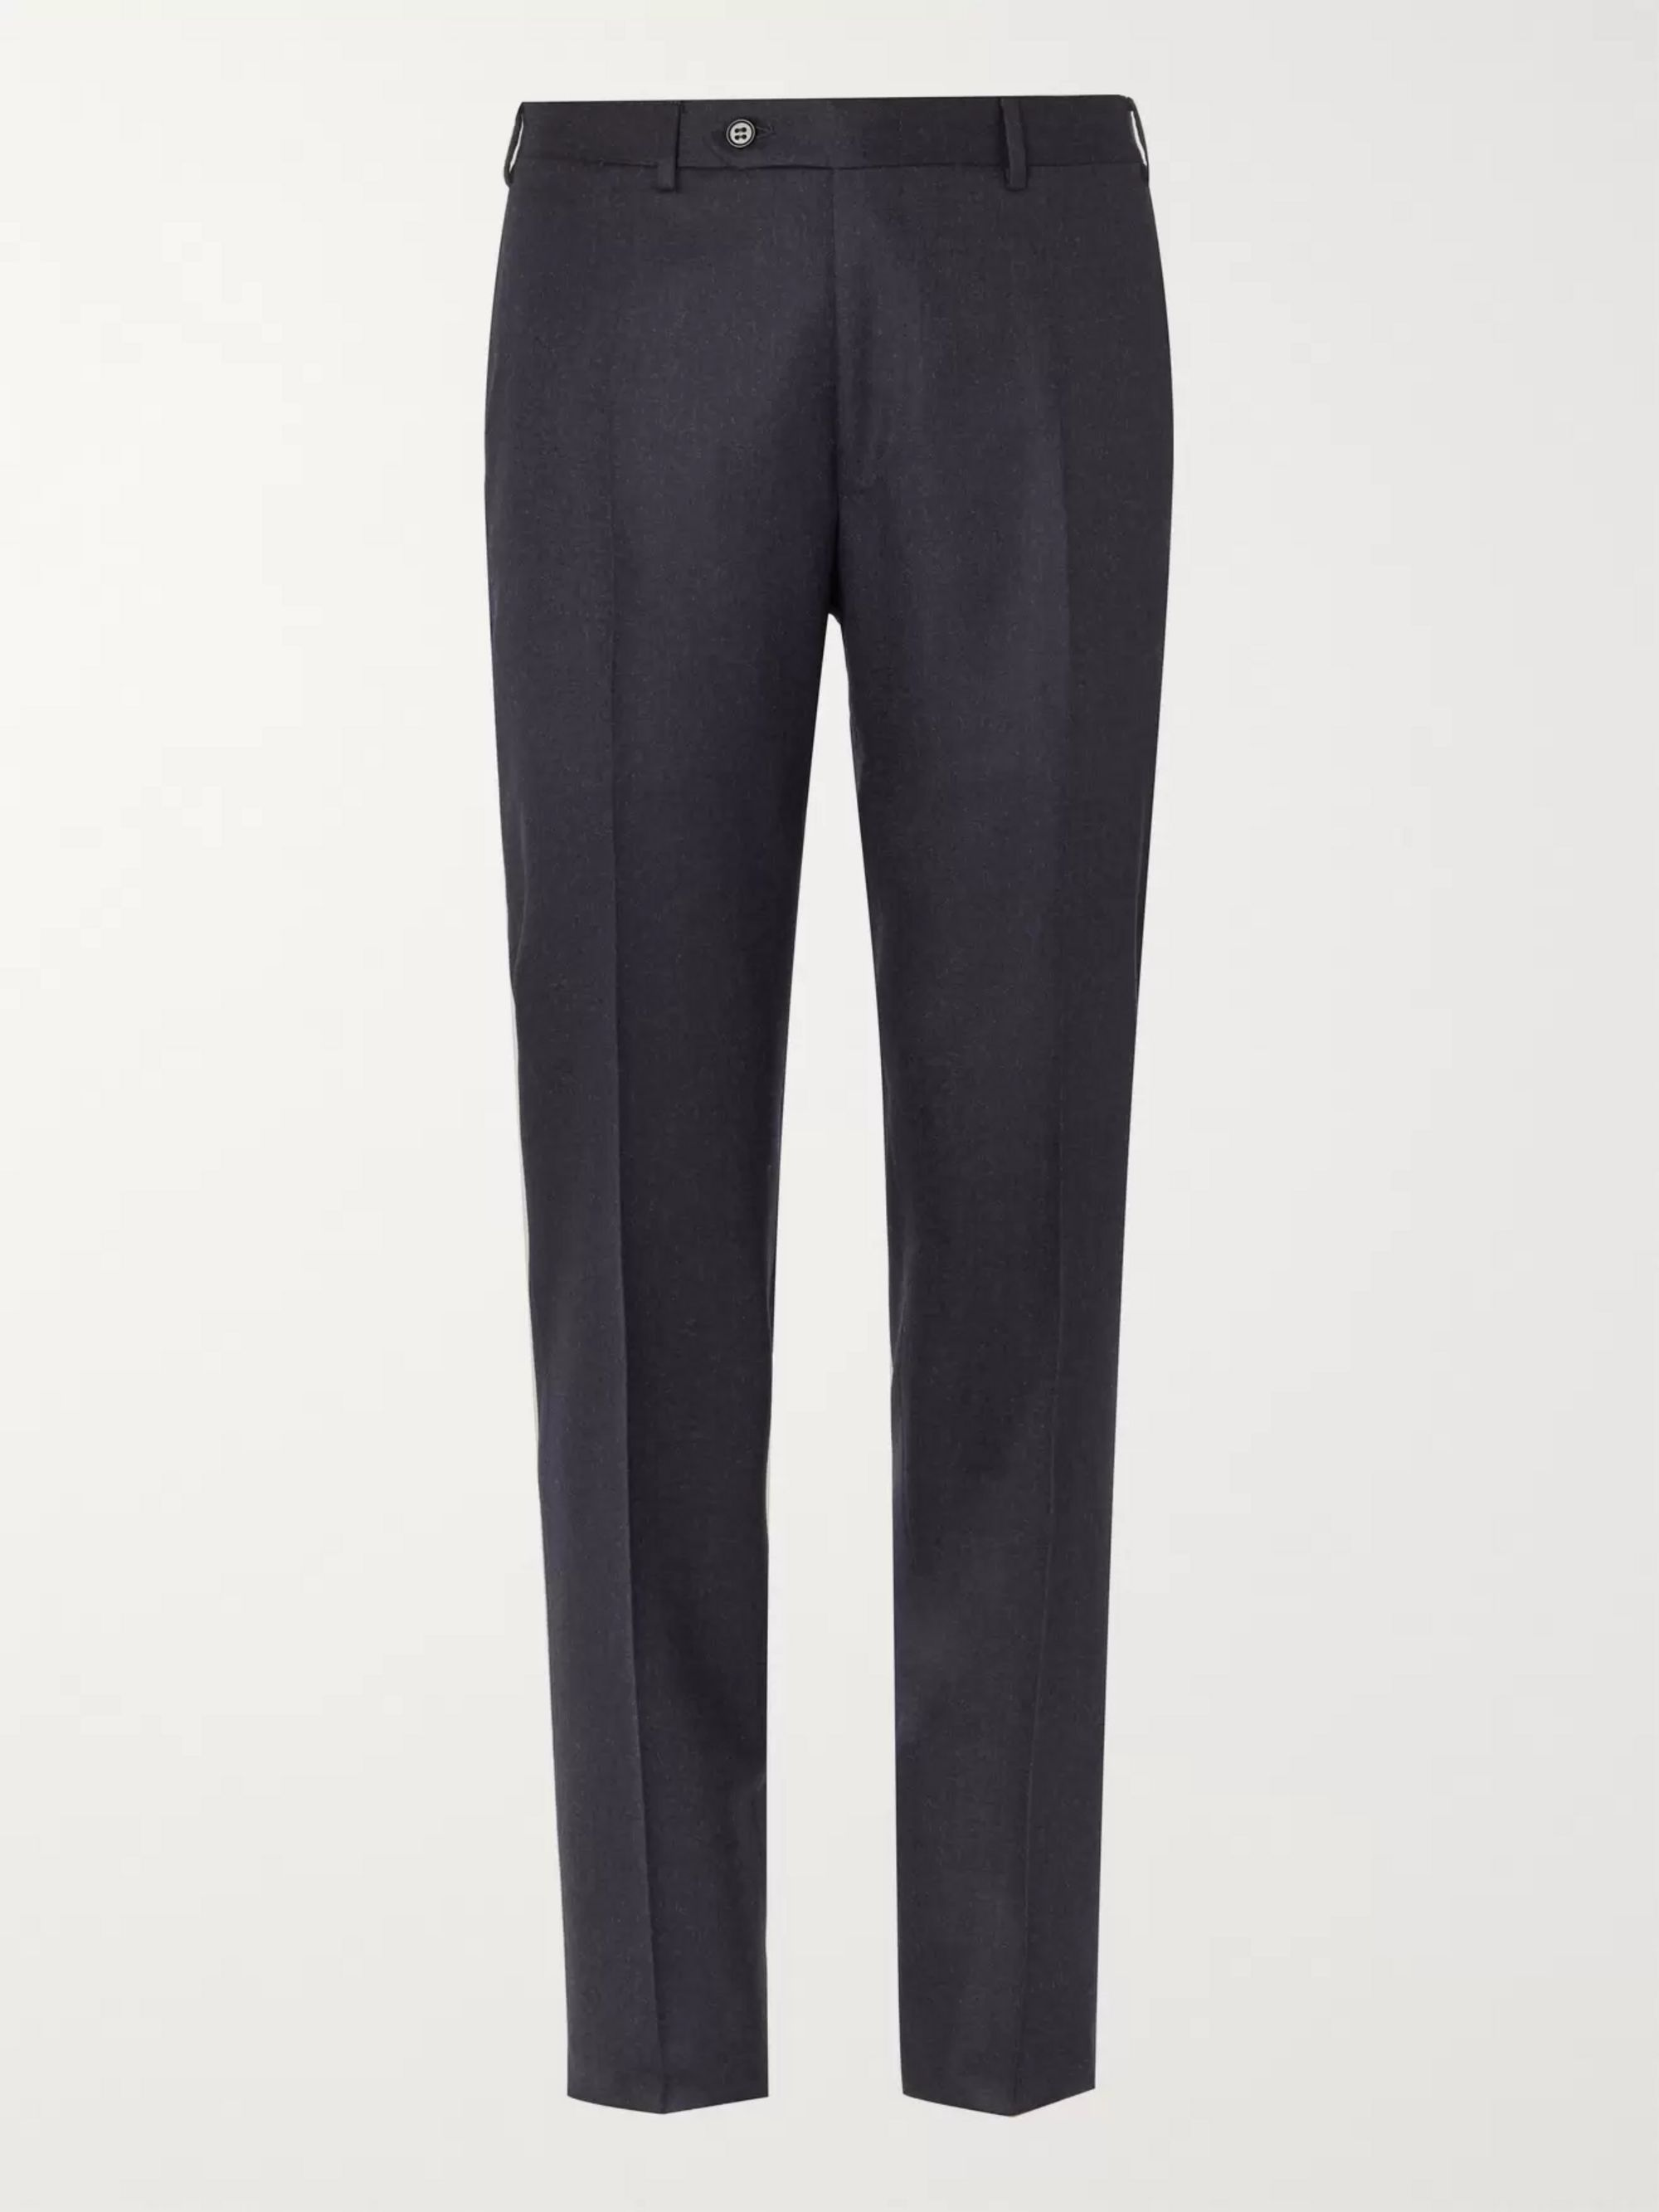 Canali Light-Grey Slim-Fit Super 120s Wool Suit Trousers